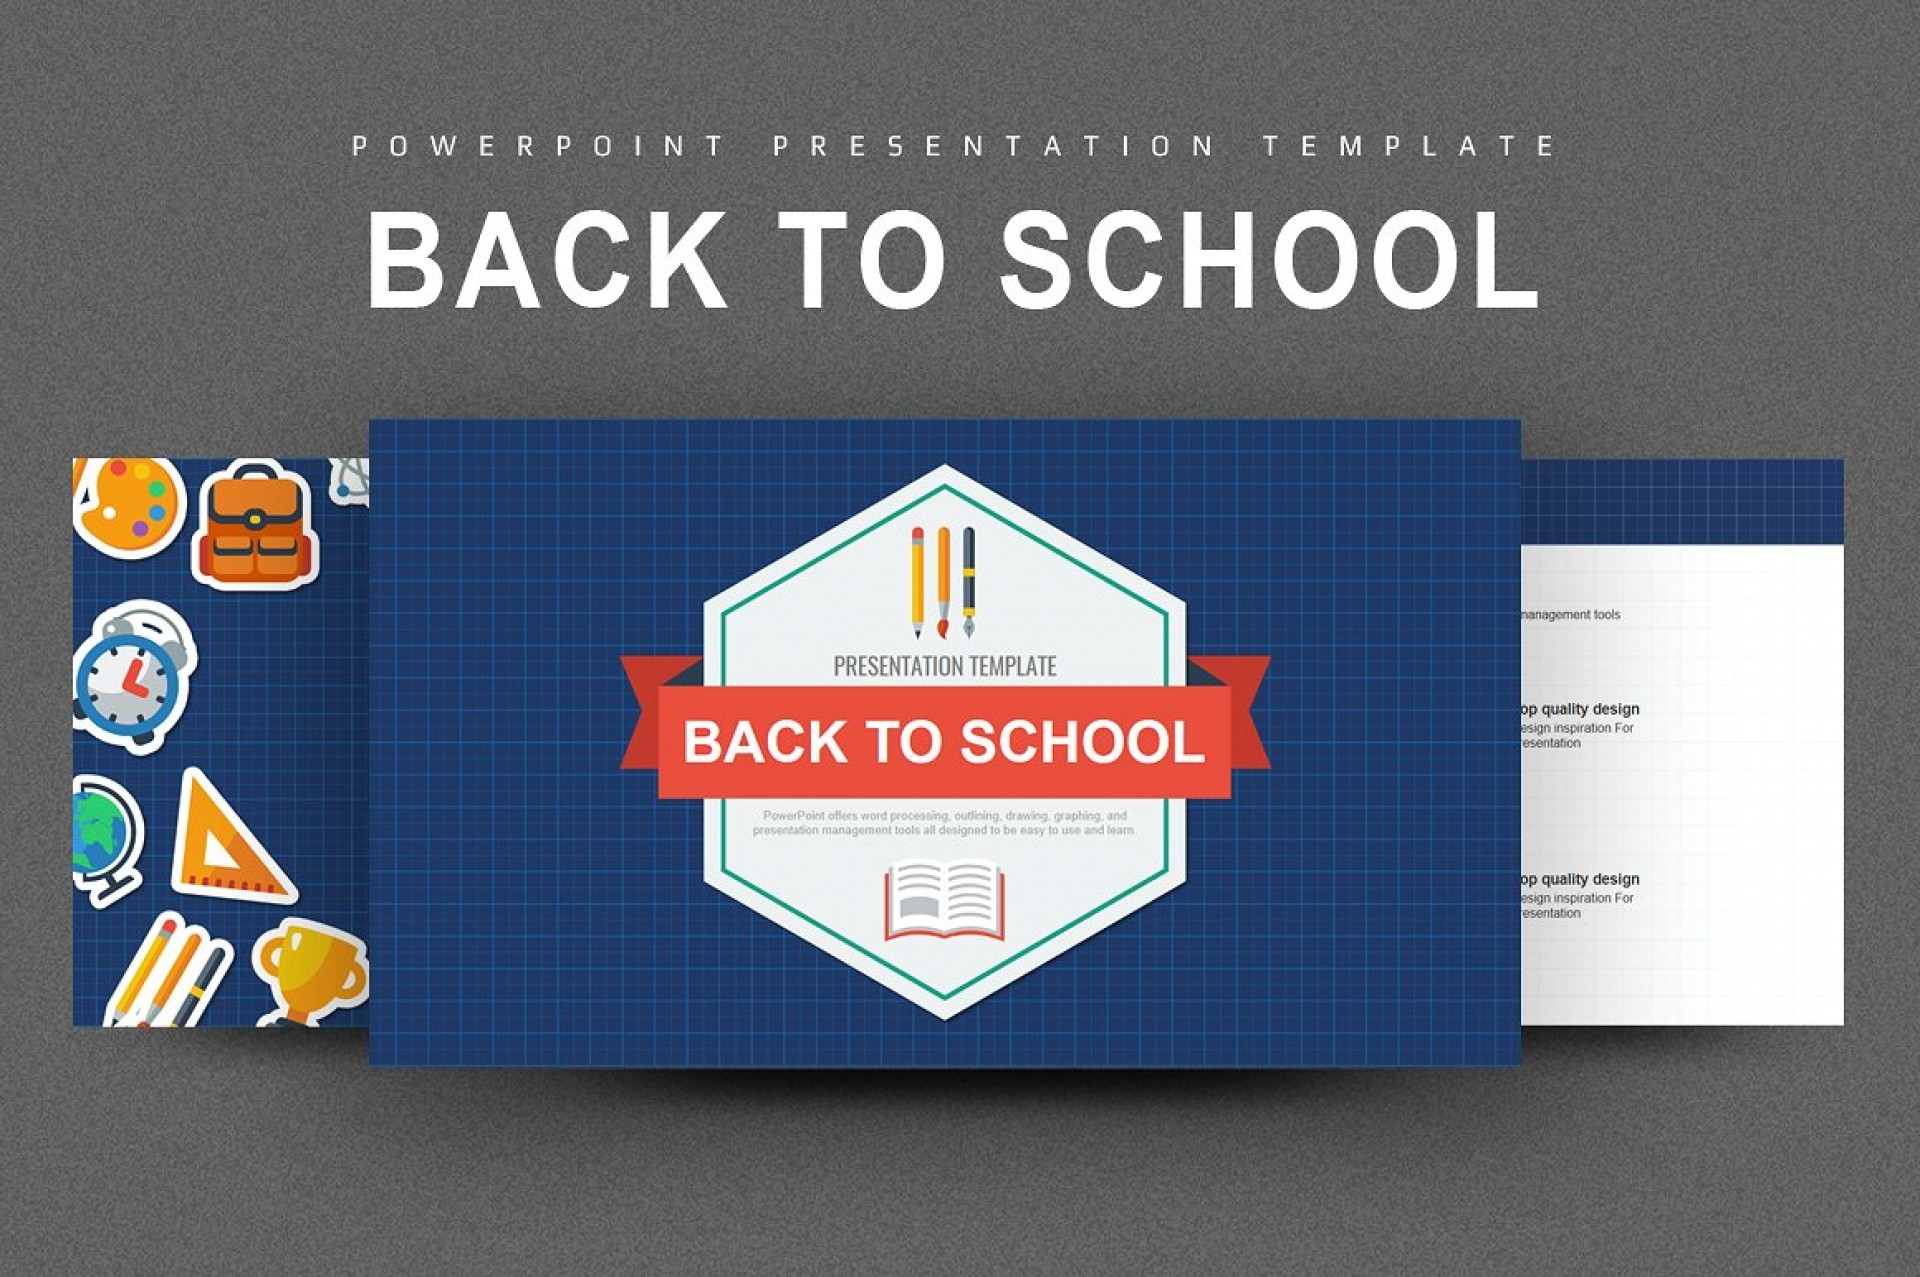 003 Wondrou Powerpoint Template Free Education Idea  Download 2018 For School1920